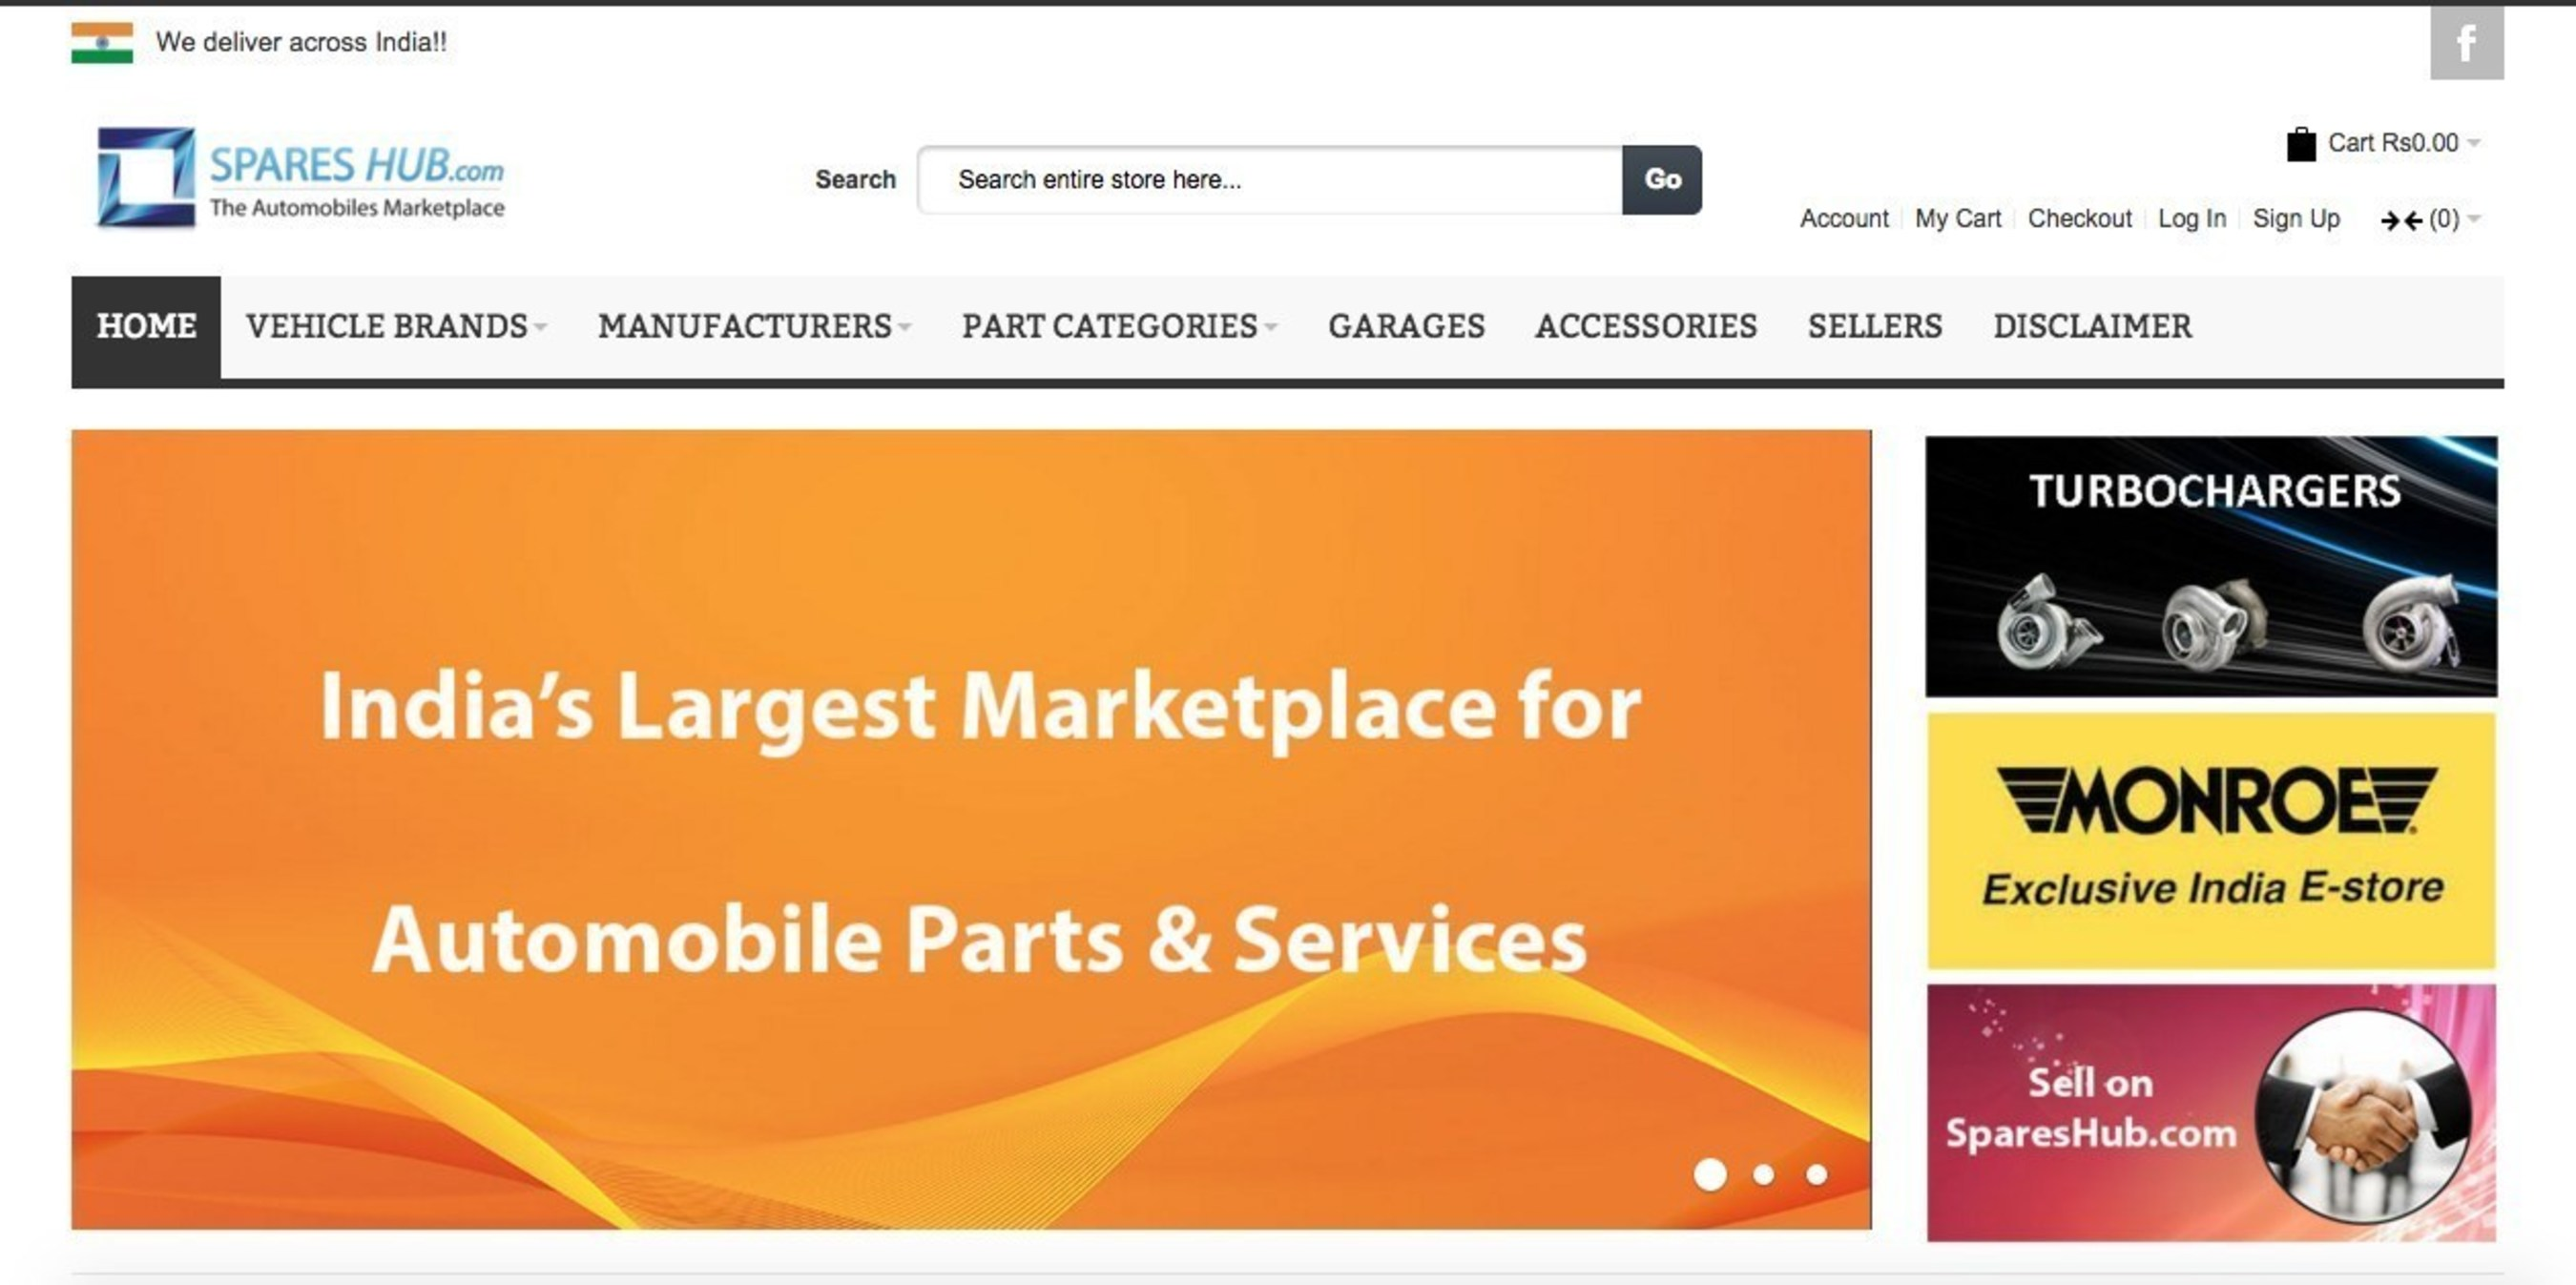 Indian Automotive Internet Startup SparesHub.com Grows & Raises Pre-Series-A Investment